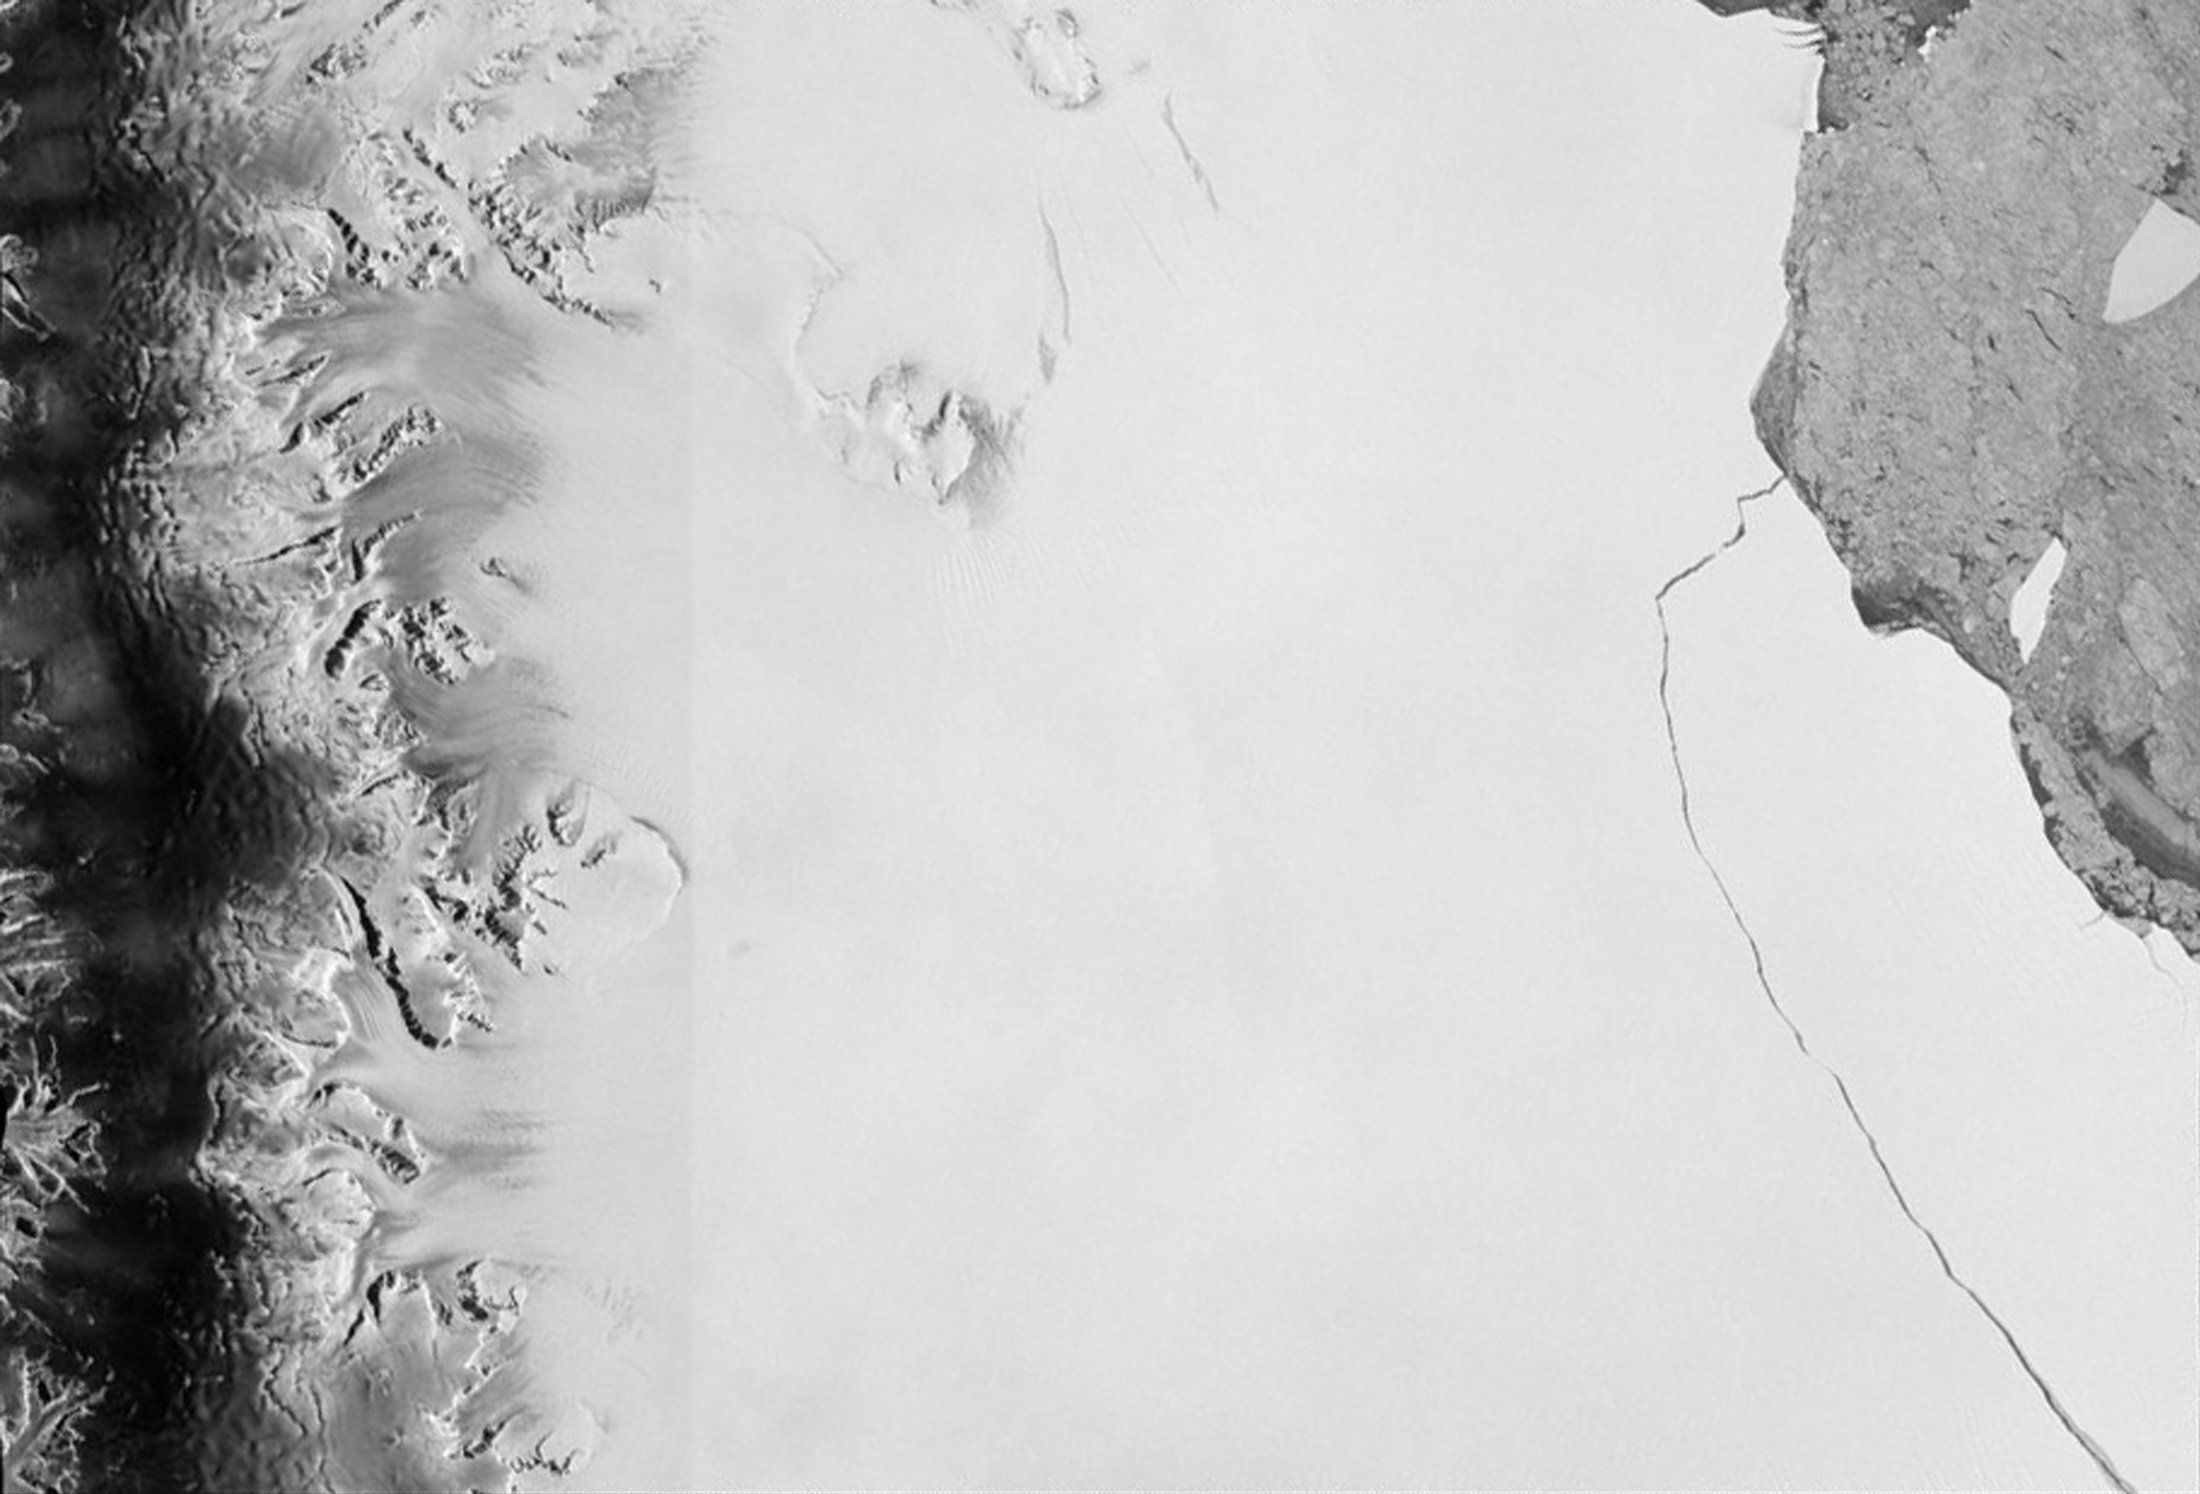 Massive chunk breaks off Greenland's Helheim Glacier